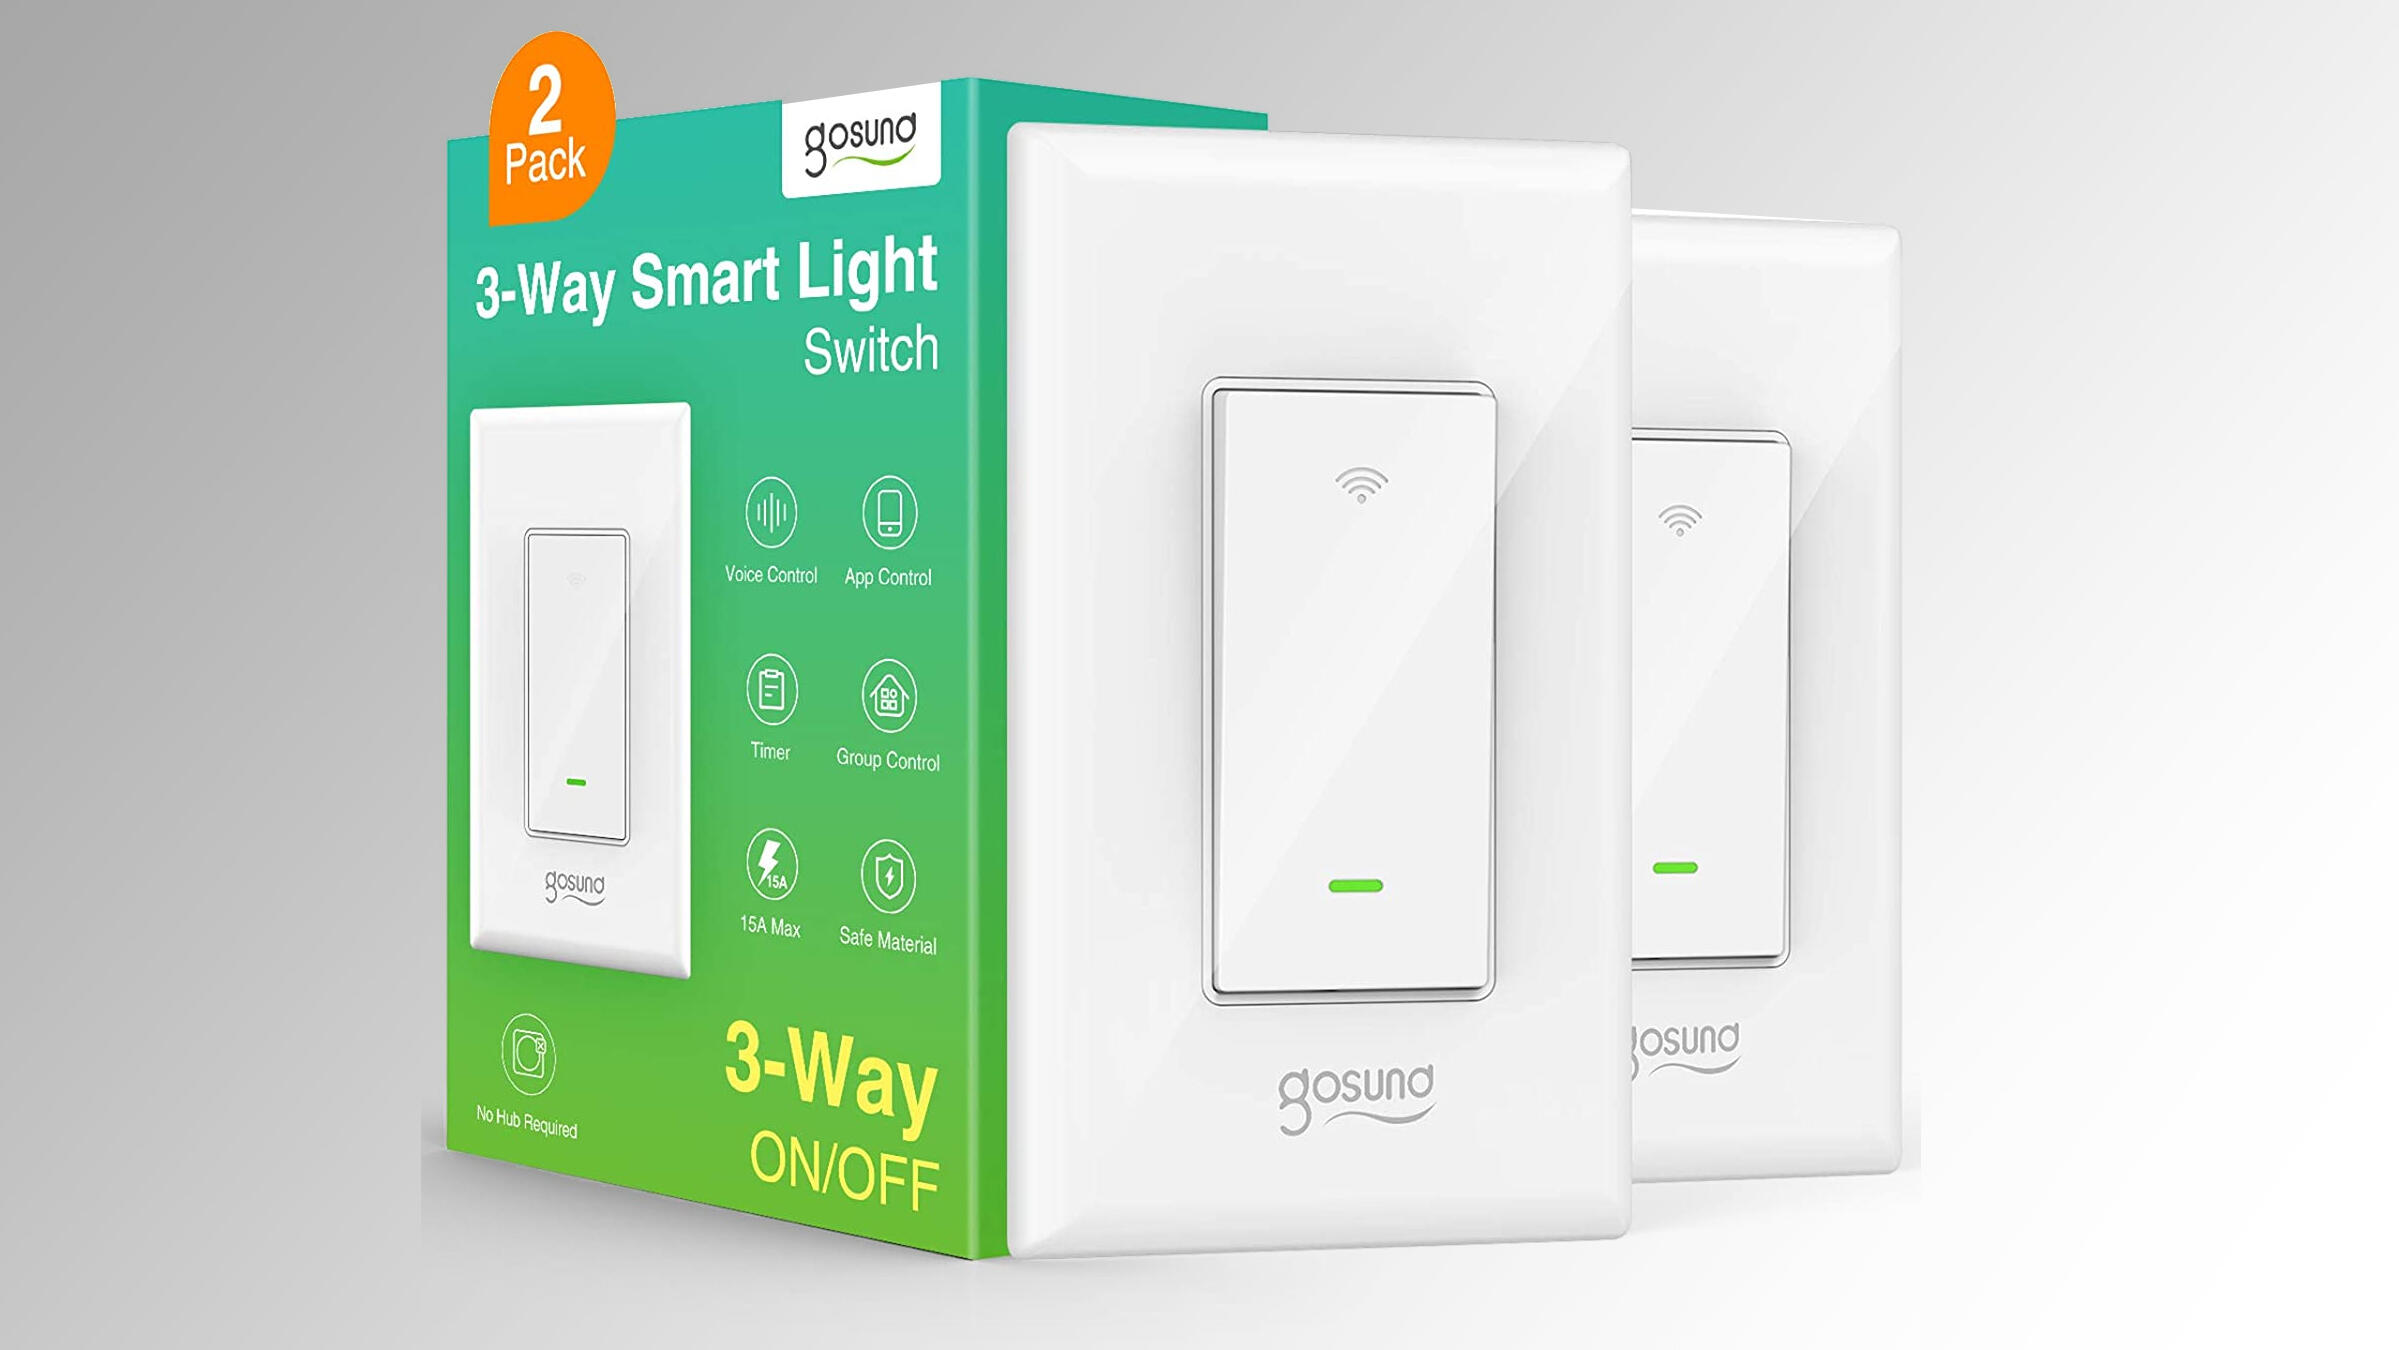 Get a pair of smart Wi-Fi 3-way light switches for $13.69, a tie for the lowest price ever     - CNET